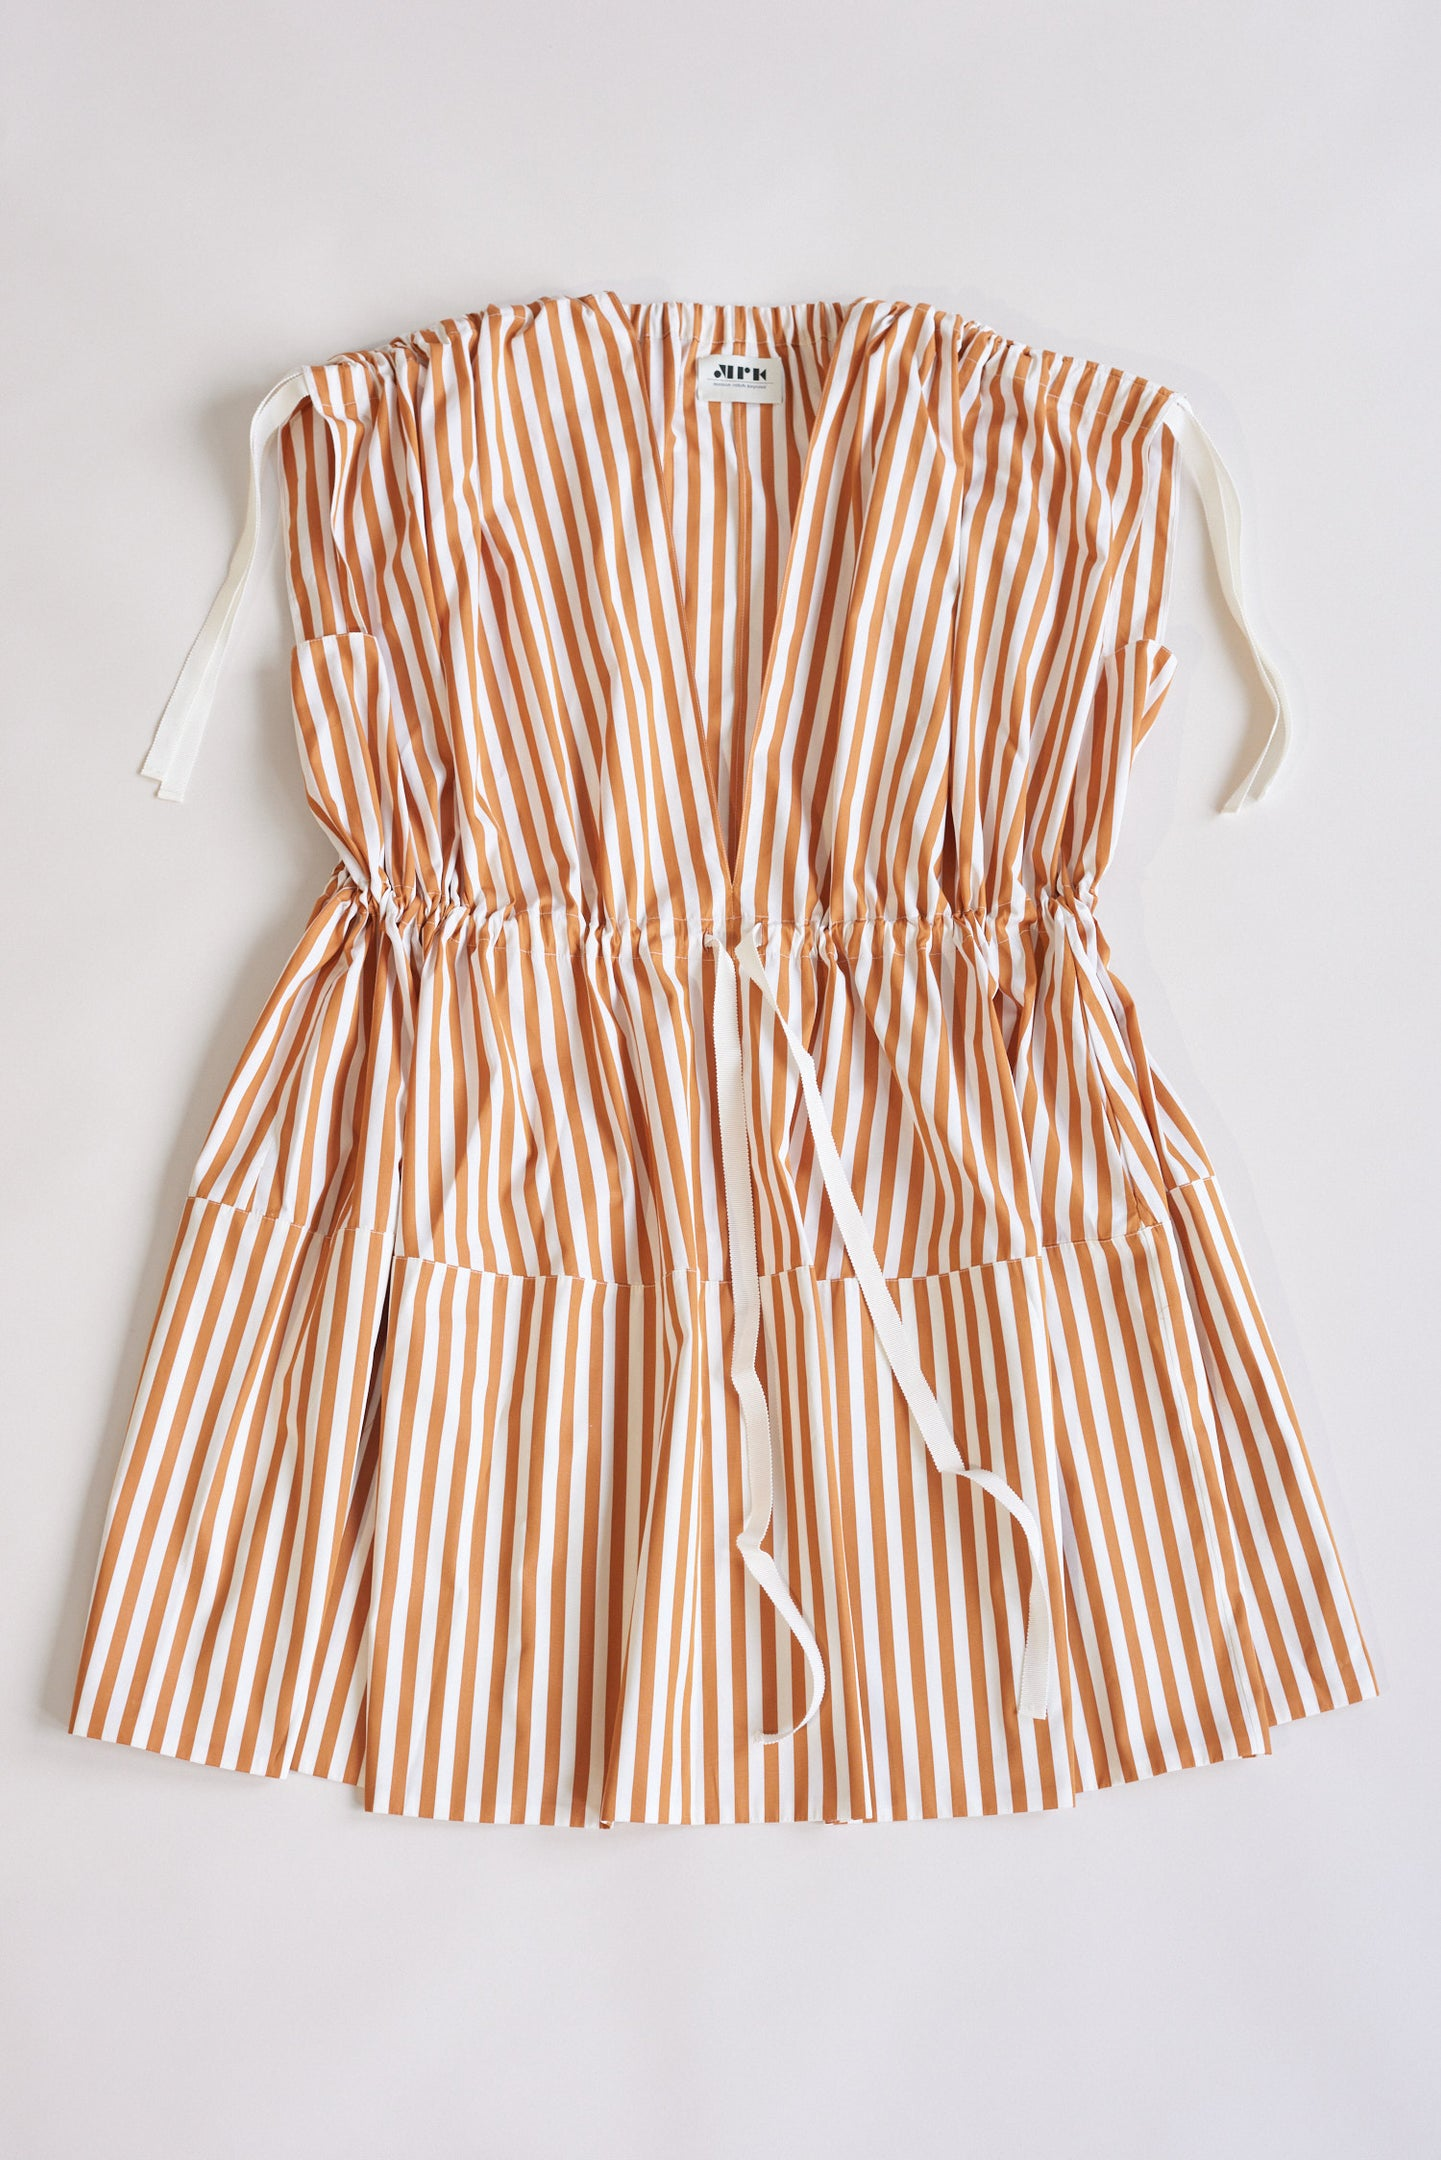 Maison Rabih Kayrouz, Stripe Poplin Dress Terracotta